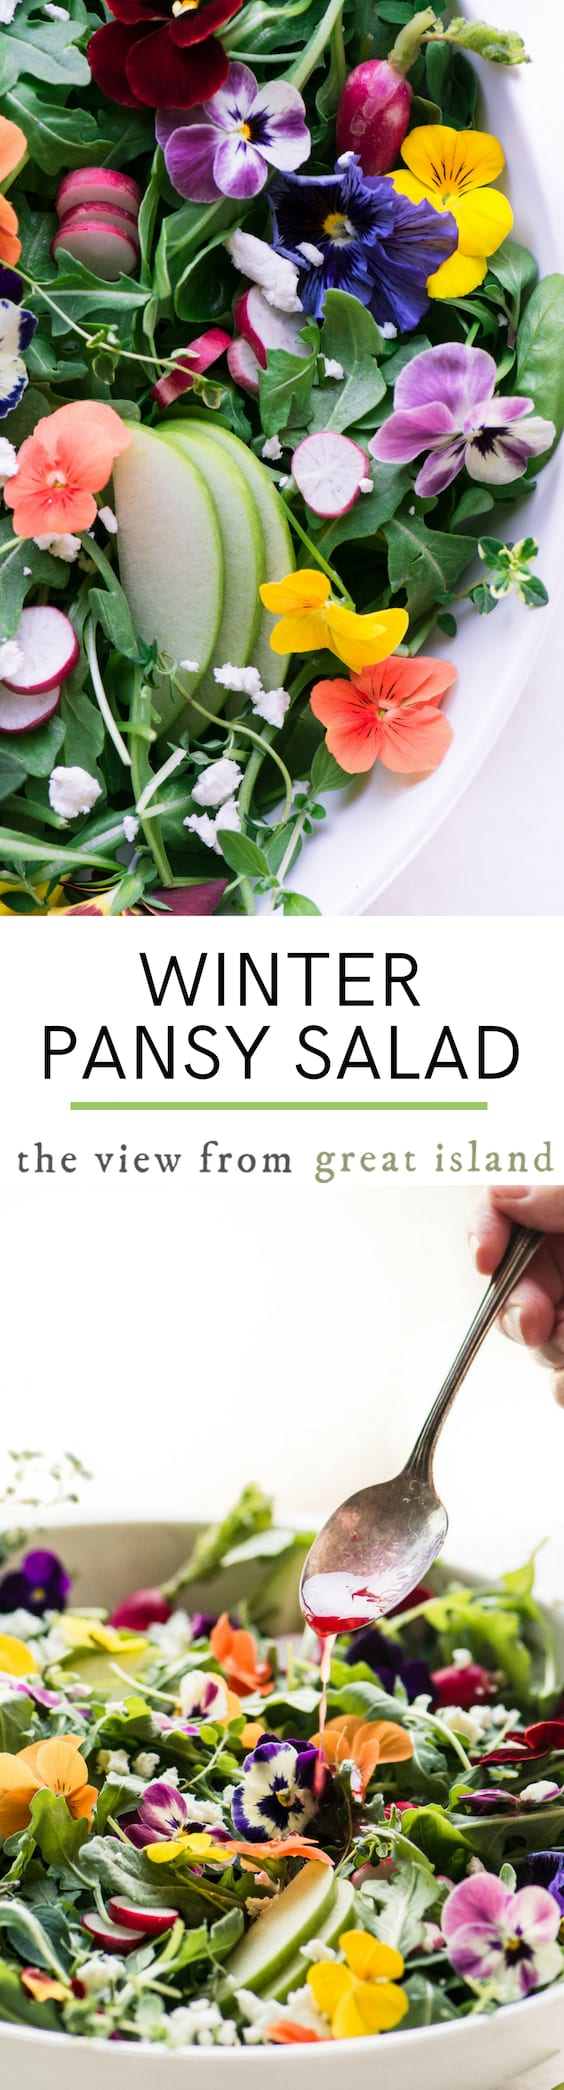 Winter Pansy Salad with blood orange vinaigrette ~ a colorful salad for your fall and holiday menus, with edible pansies that thrive in cooler months. #salad #edibleflowers #pansies #sidedish #greens #healthy #holiday #sidedish #fallsalad